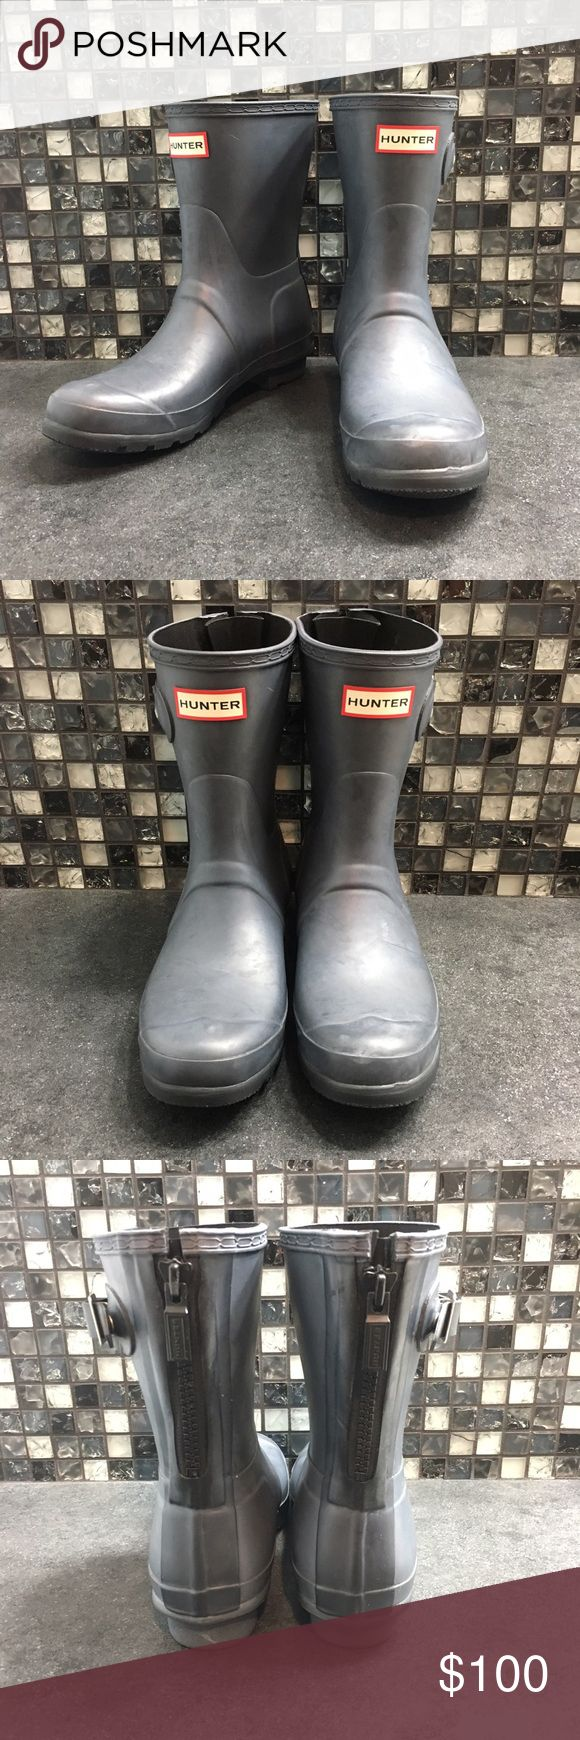 NWOT Hunter blue rain boots Brand new without tags blue Hunter brand rain boots. They have never been worn. They zip up in the back and they have buckles on the sides. They're a women's size 8.   🌸BUNDLE AND SAVE  🌸NO TRADES 🌸REASONABLE OFFERS CONSIDER